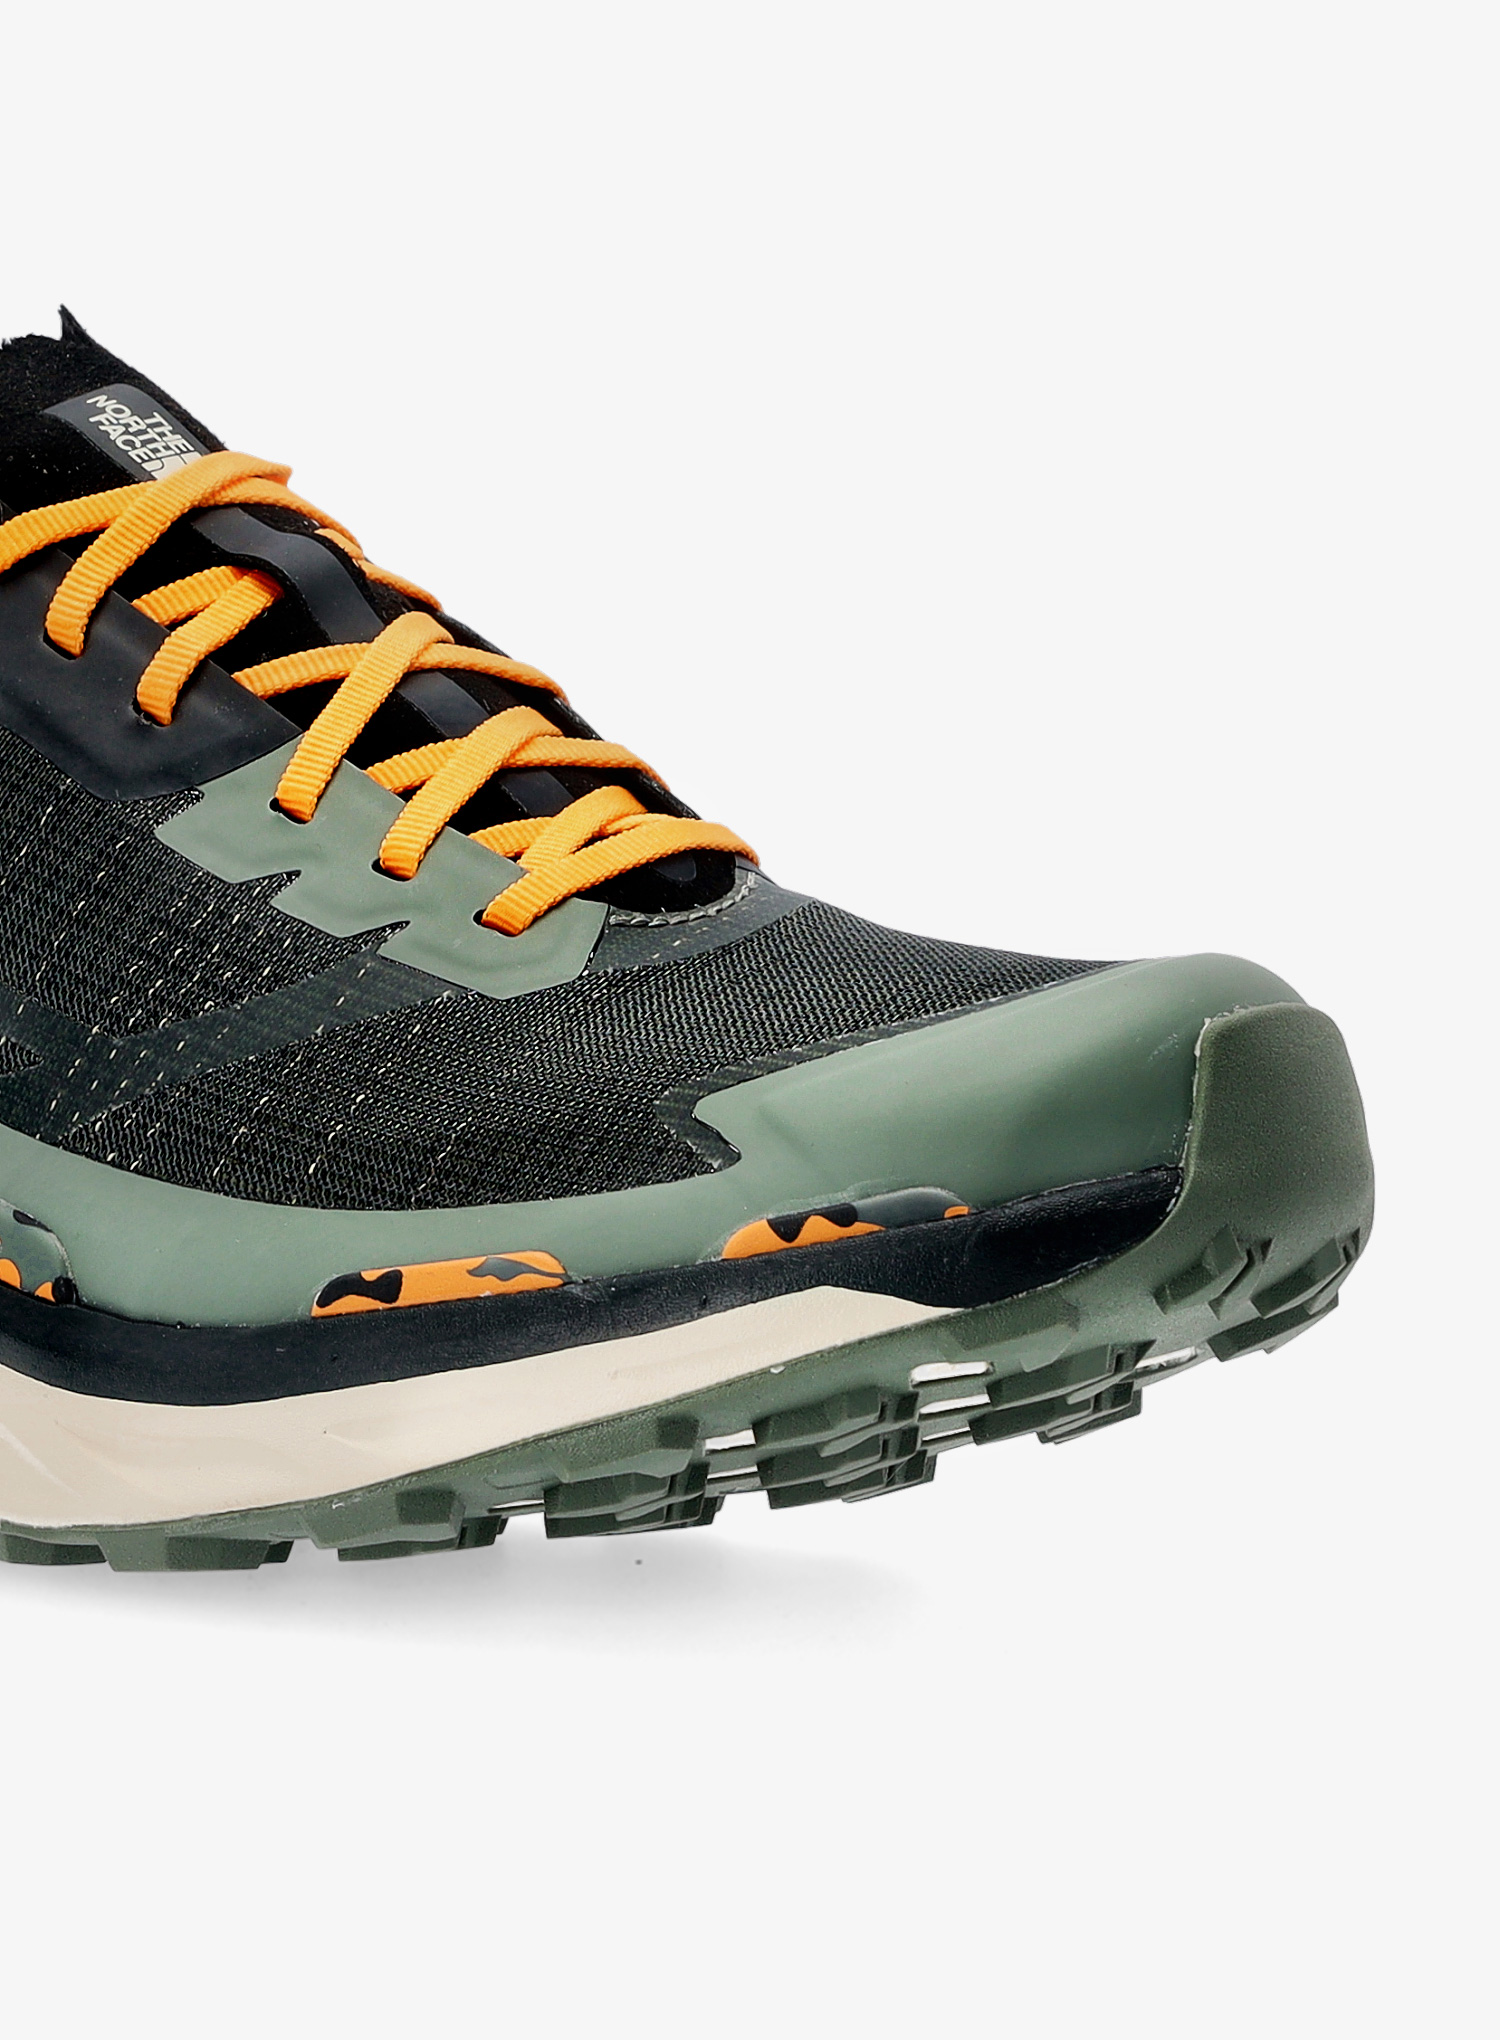 Buty trailowe The North Face Vectiv Infinite LTD - agave green/gold - zdjęcie nr. 9